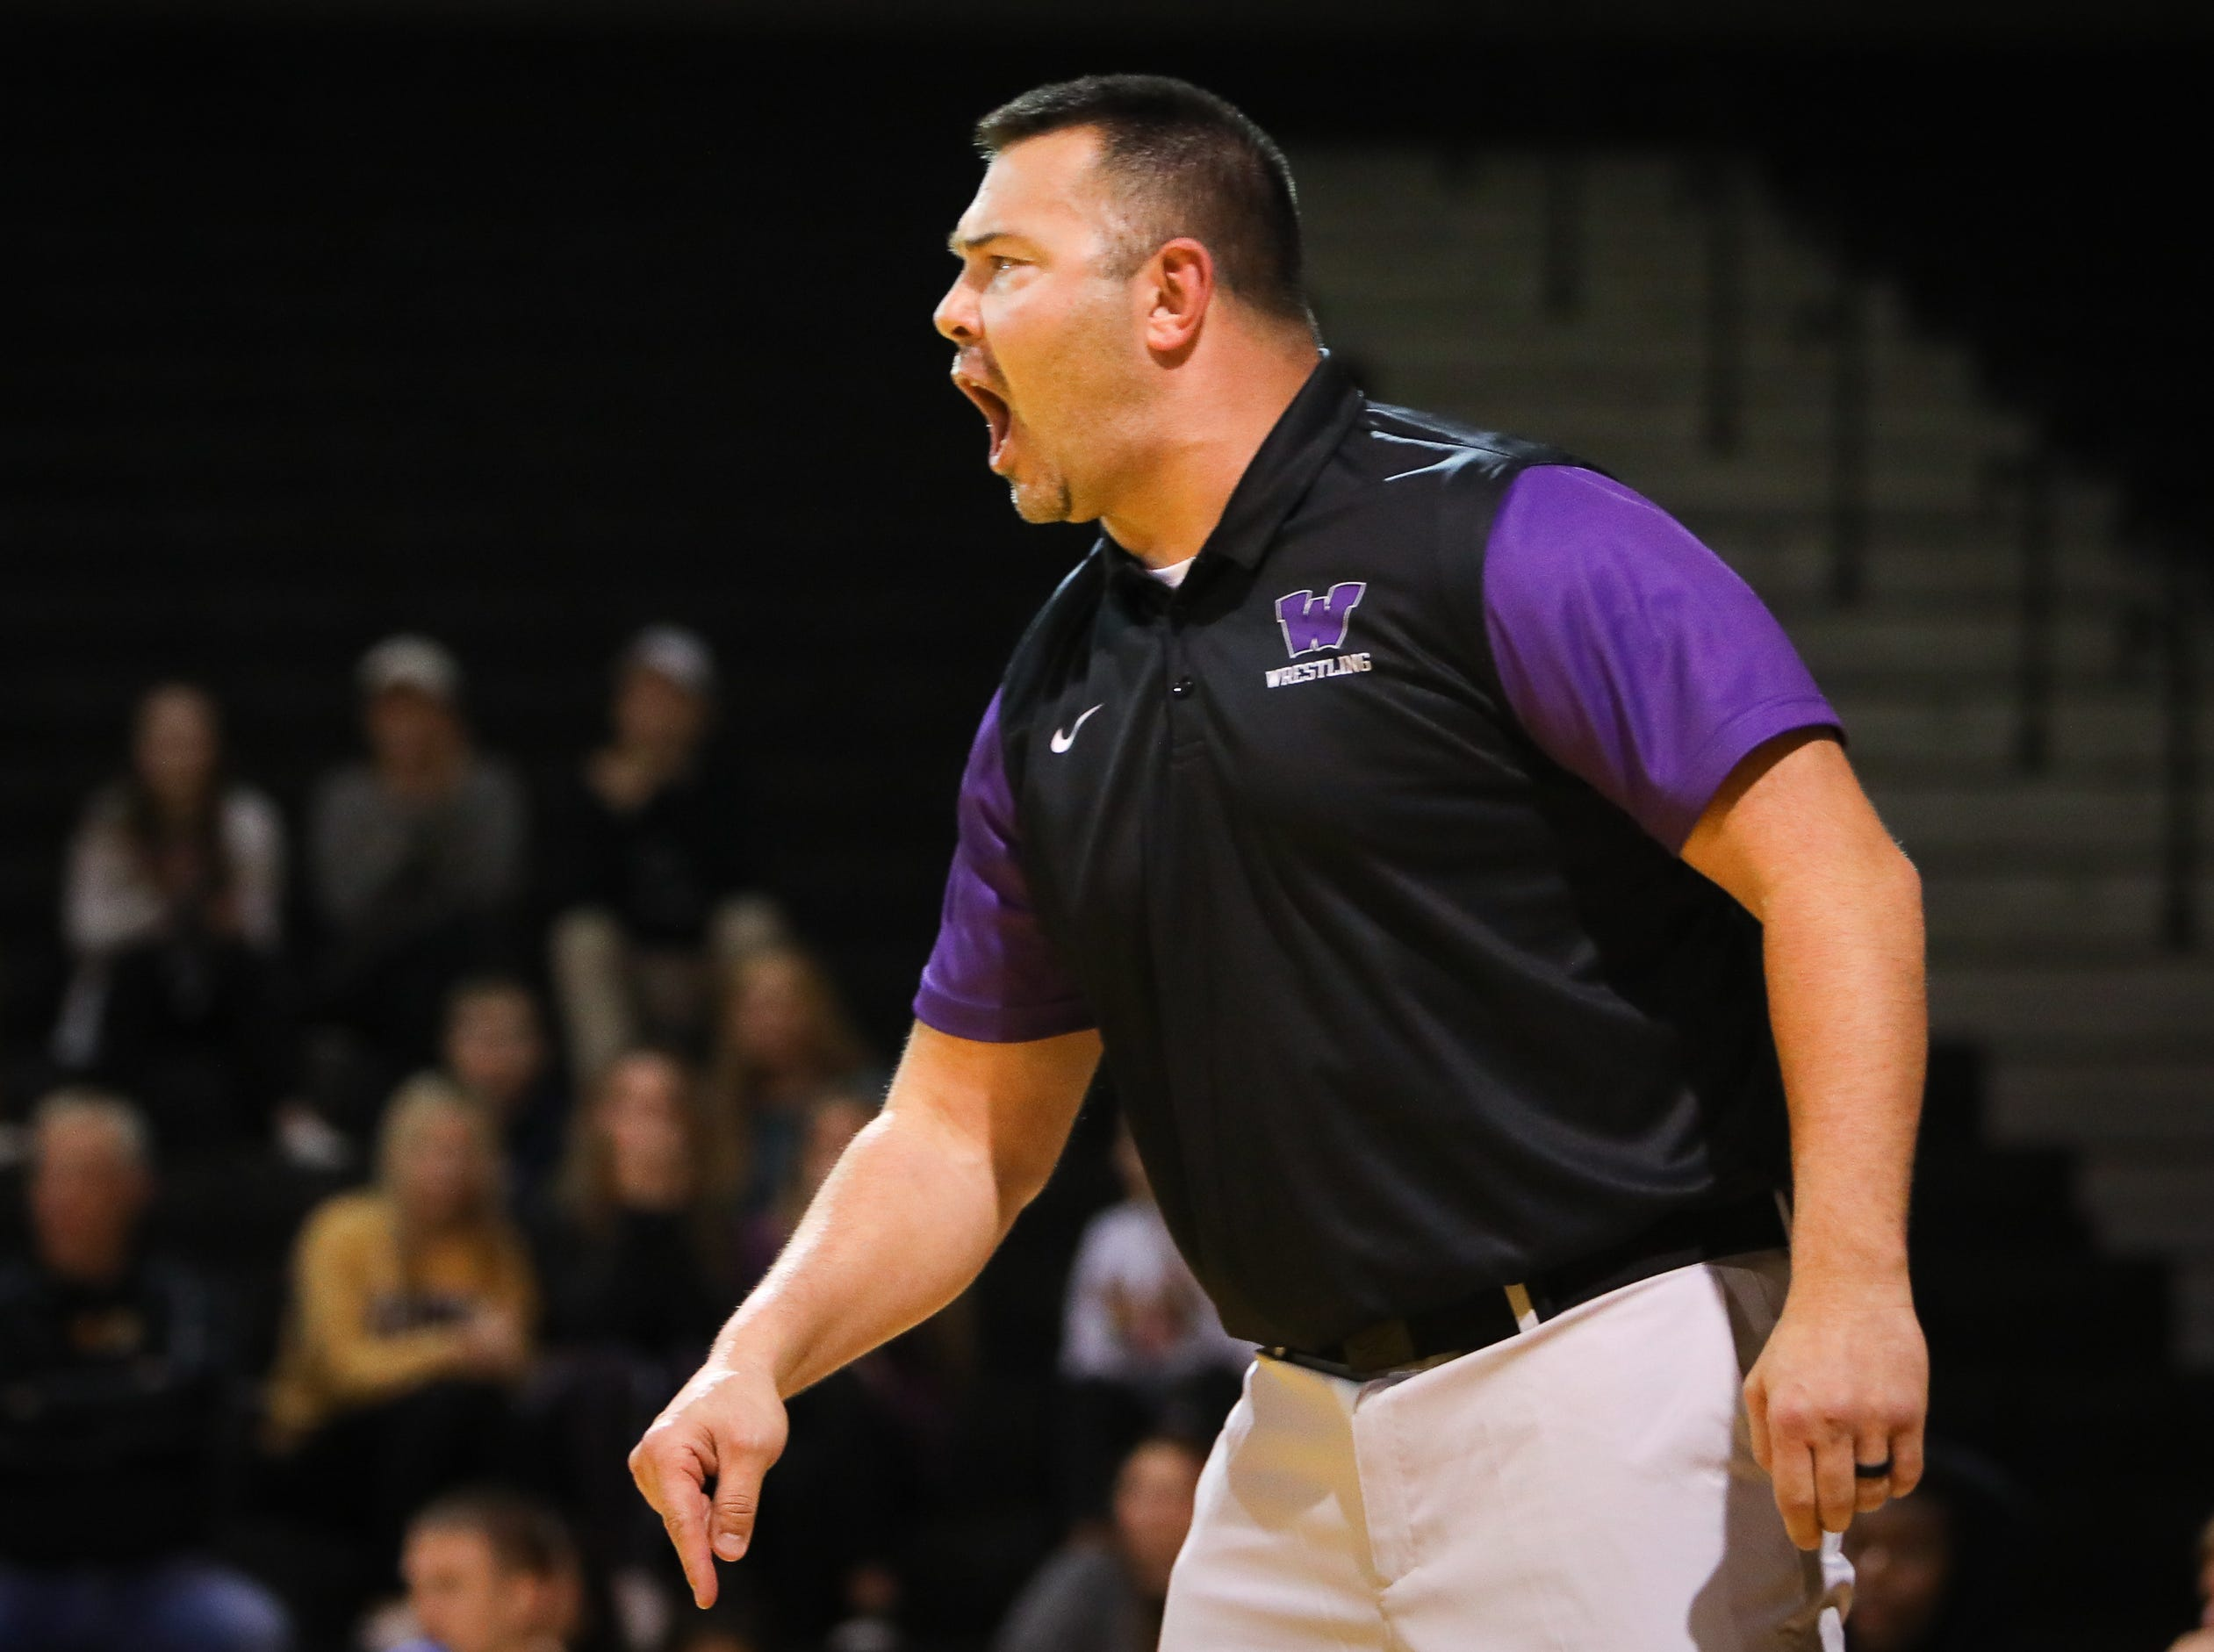 Waukee head coach Chad Vollmecke yells out instructions to his wrestlers during a high school wrestling meet between the Valley Tigers and the Waukee Warriors at Waukee High School on Dec. 20, 2018 in Waukee, Iowa.